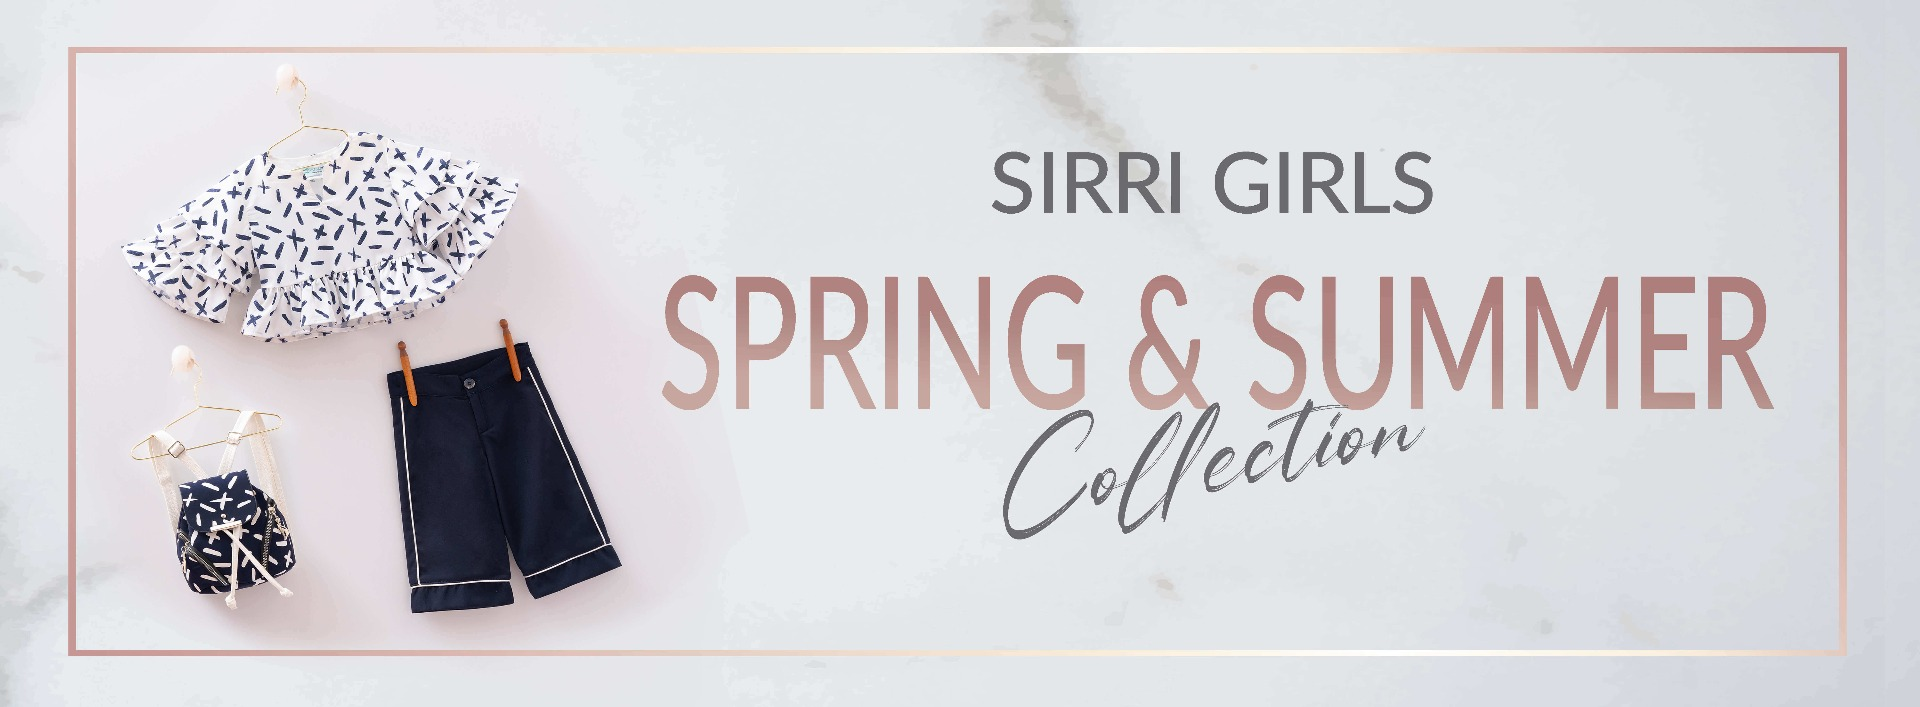 https://www.sirri.co.uk/girl-s/girls-dresses/casual-wear.html